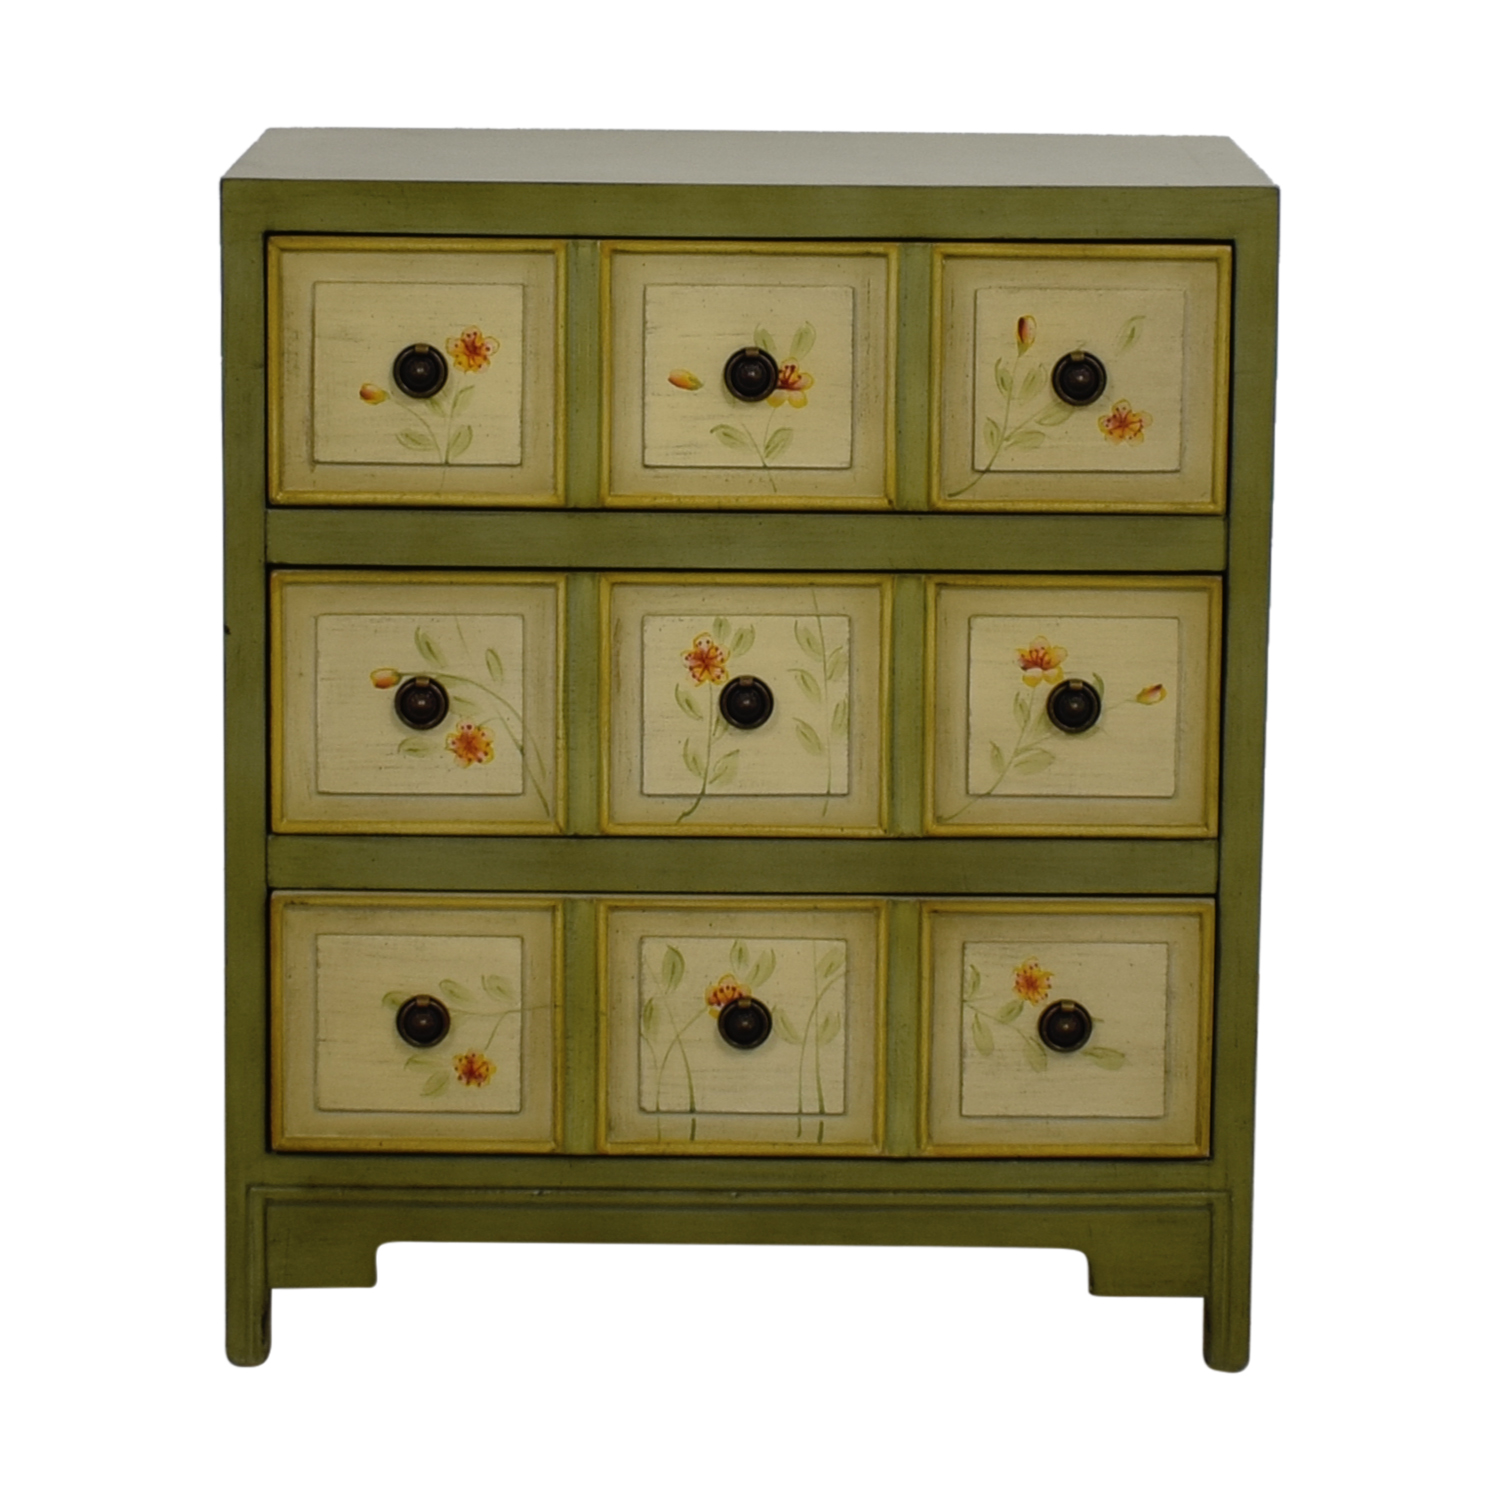 Raymour & Flanigan Green Floral Three-Drawer Cabinet Raymour & Flanigan